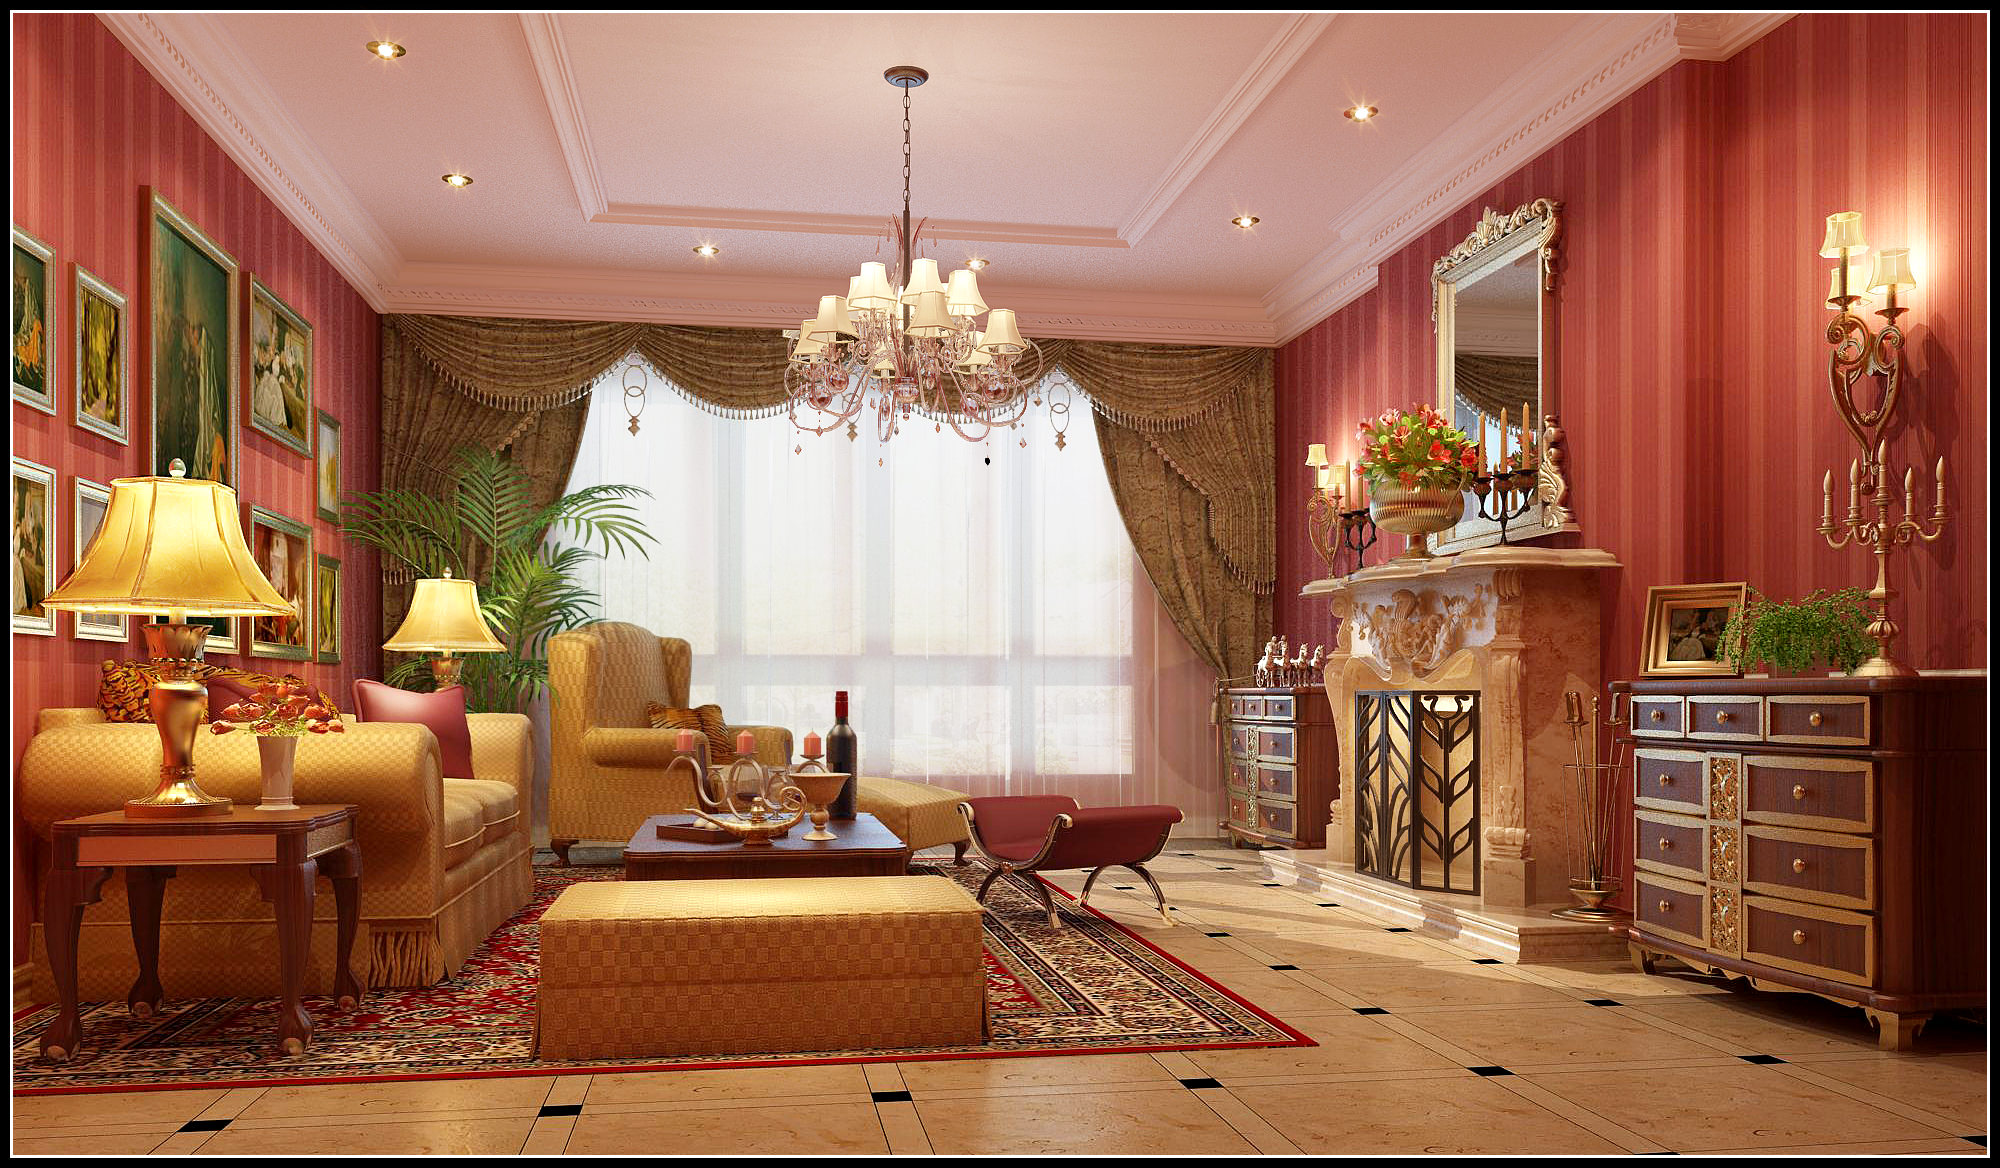 Cozy Living Room With Red Wallpapers 3d Model Max